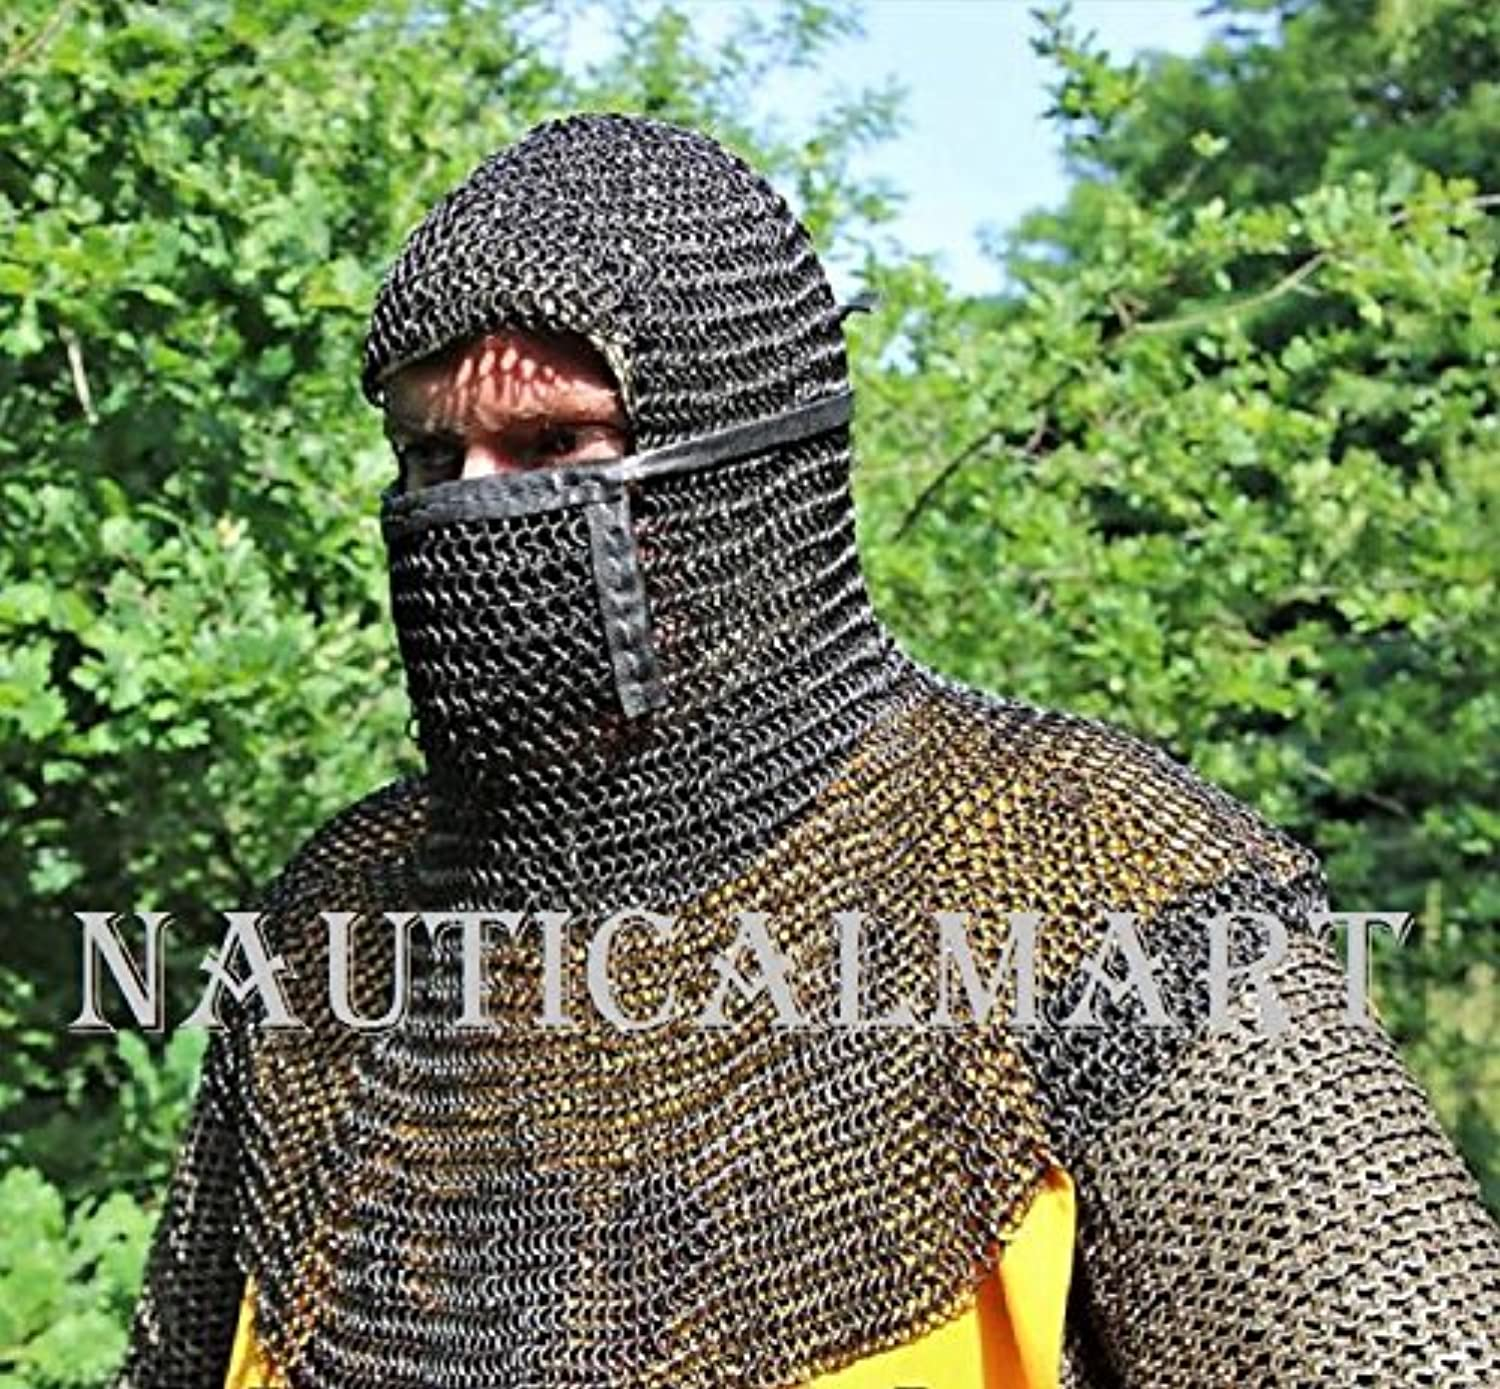 NAUTICALMART Medieval Coif with Square Visor Blackened 8 mm